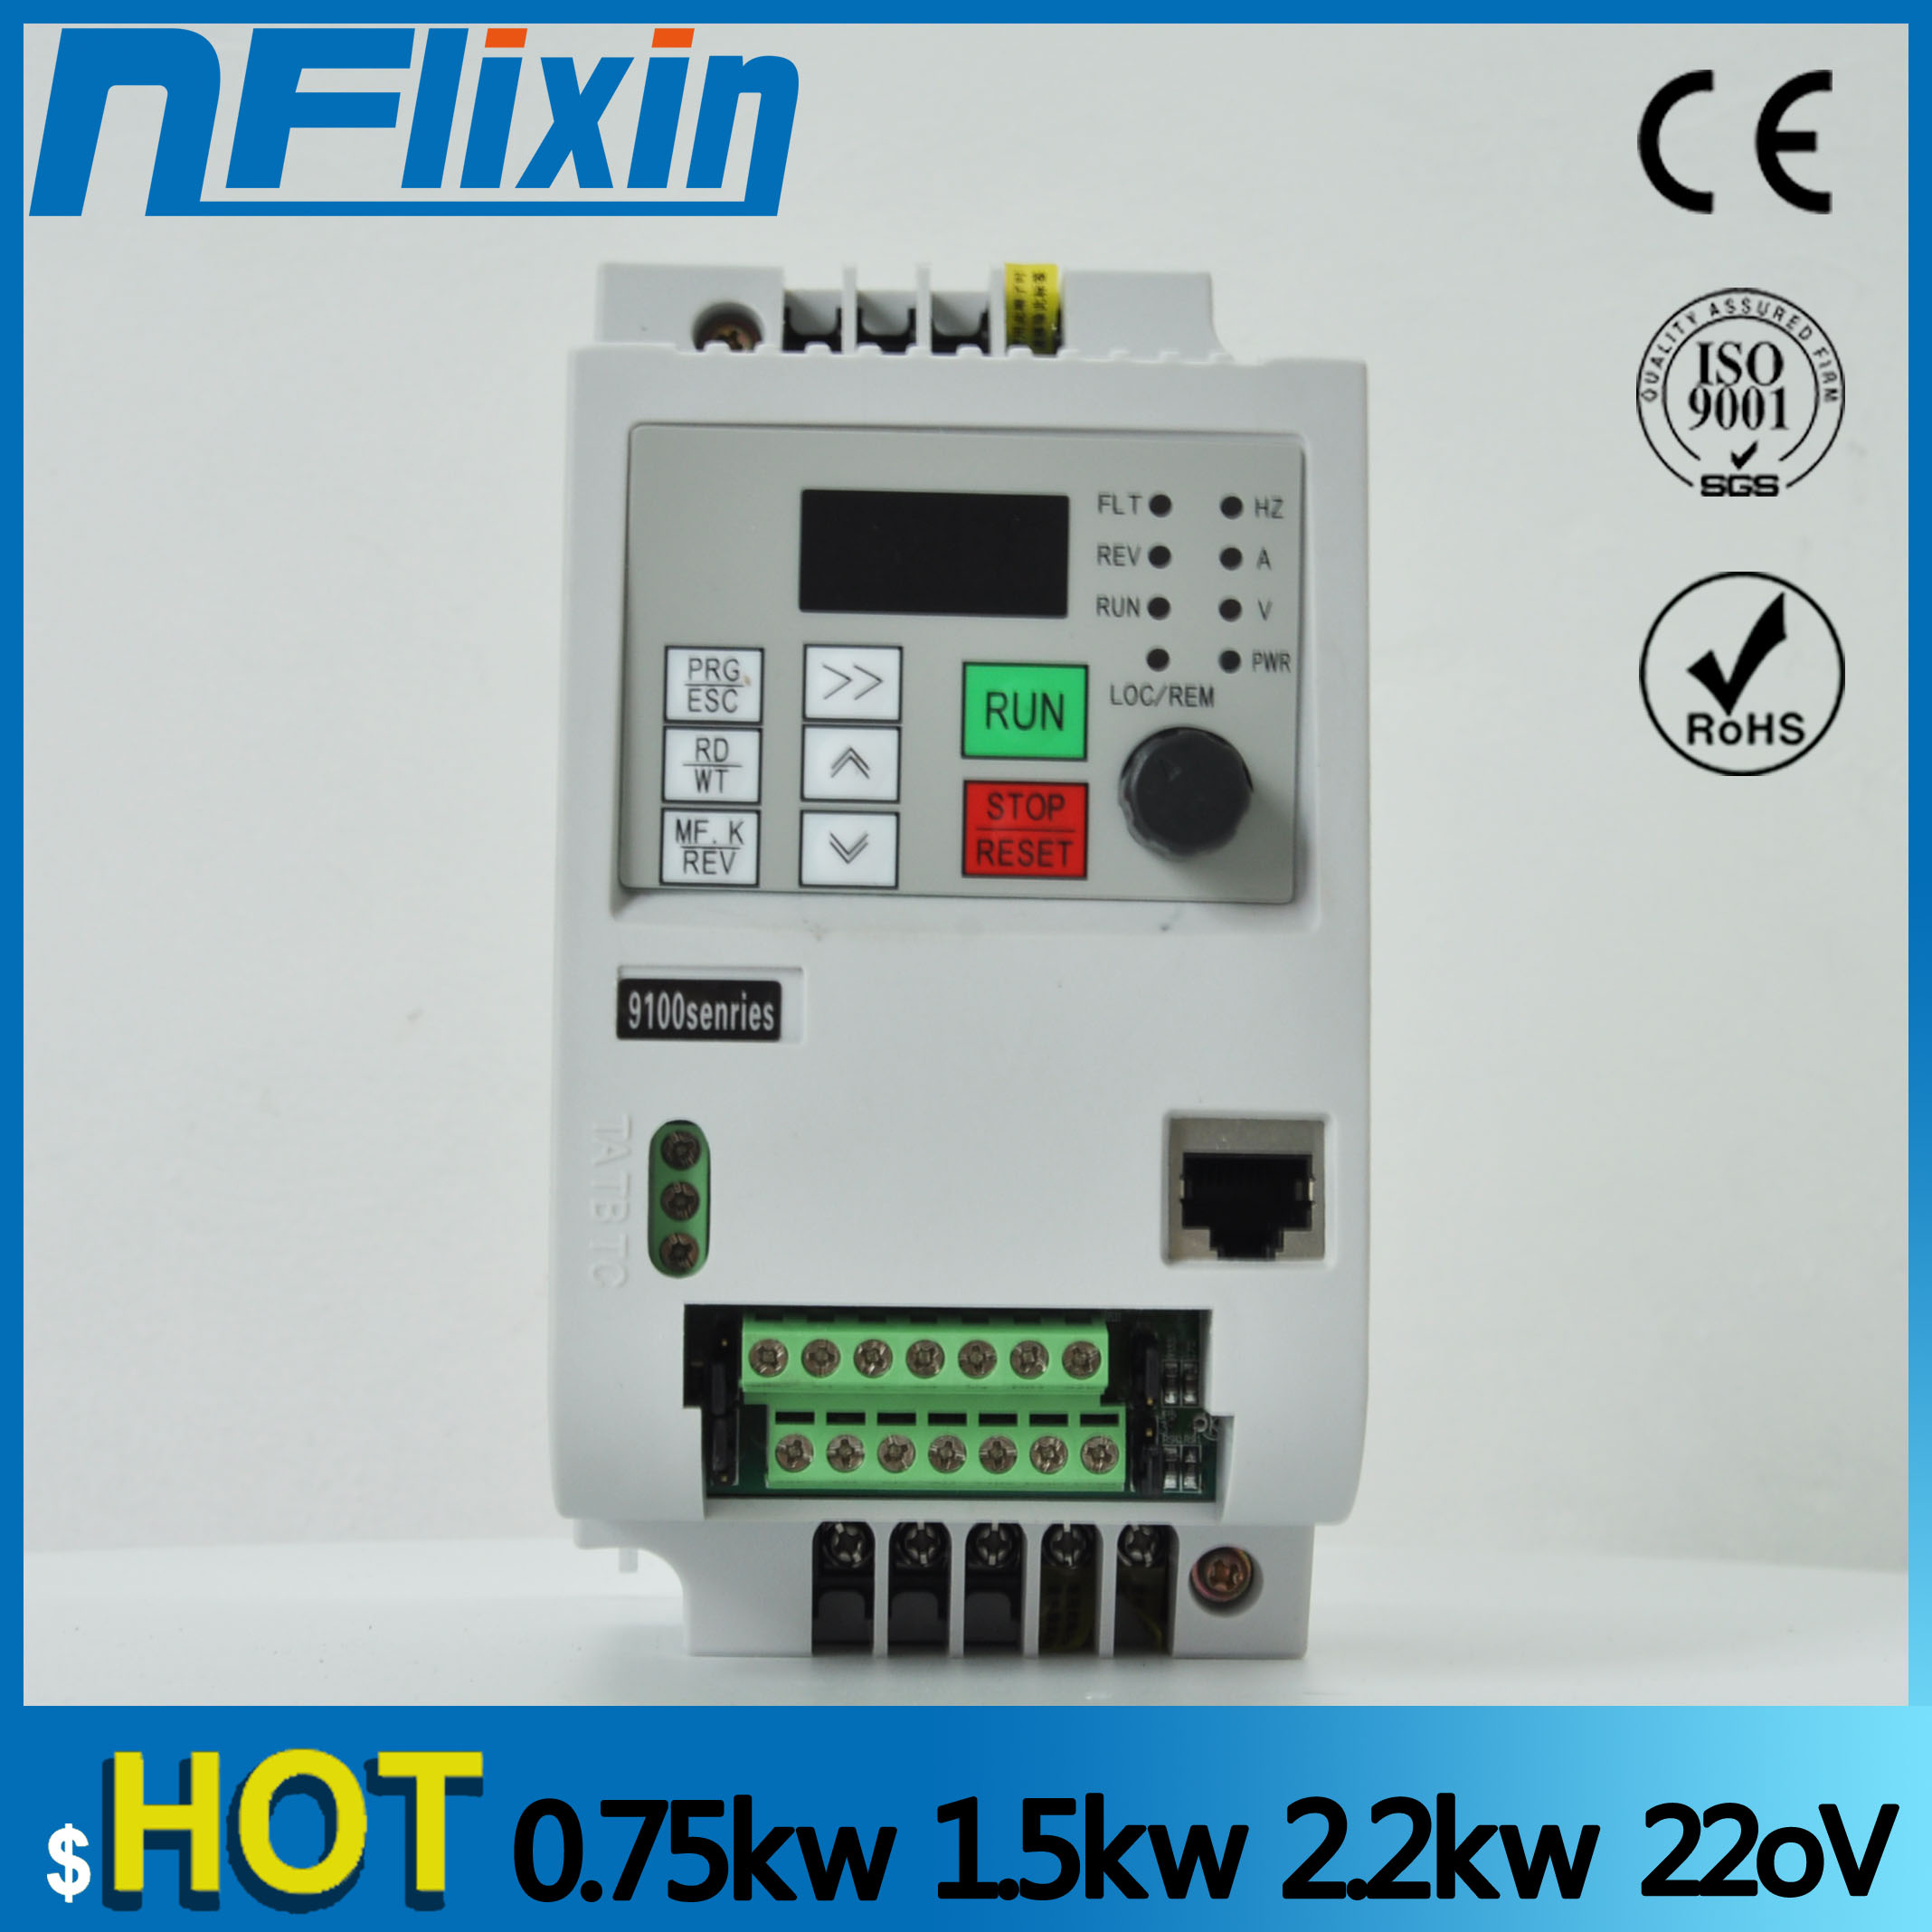 <font><b>1</b></font>.5KW/2.2KW/4KW/ <font><b>220V</b></font> Single-<font><b>phase</b></font> <font><b>inverter</b></font> input VFD <font><b>3</b></font> <font><b>Phase</b></font> Output Frequency Converter Adjustable Speed 4kw <font><b>1</b></font>.5kw 0.4kw 380V image